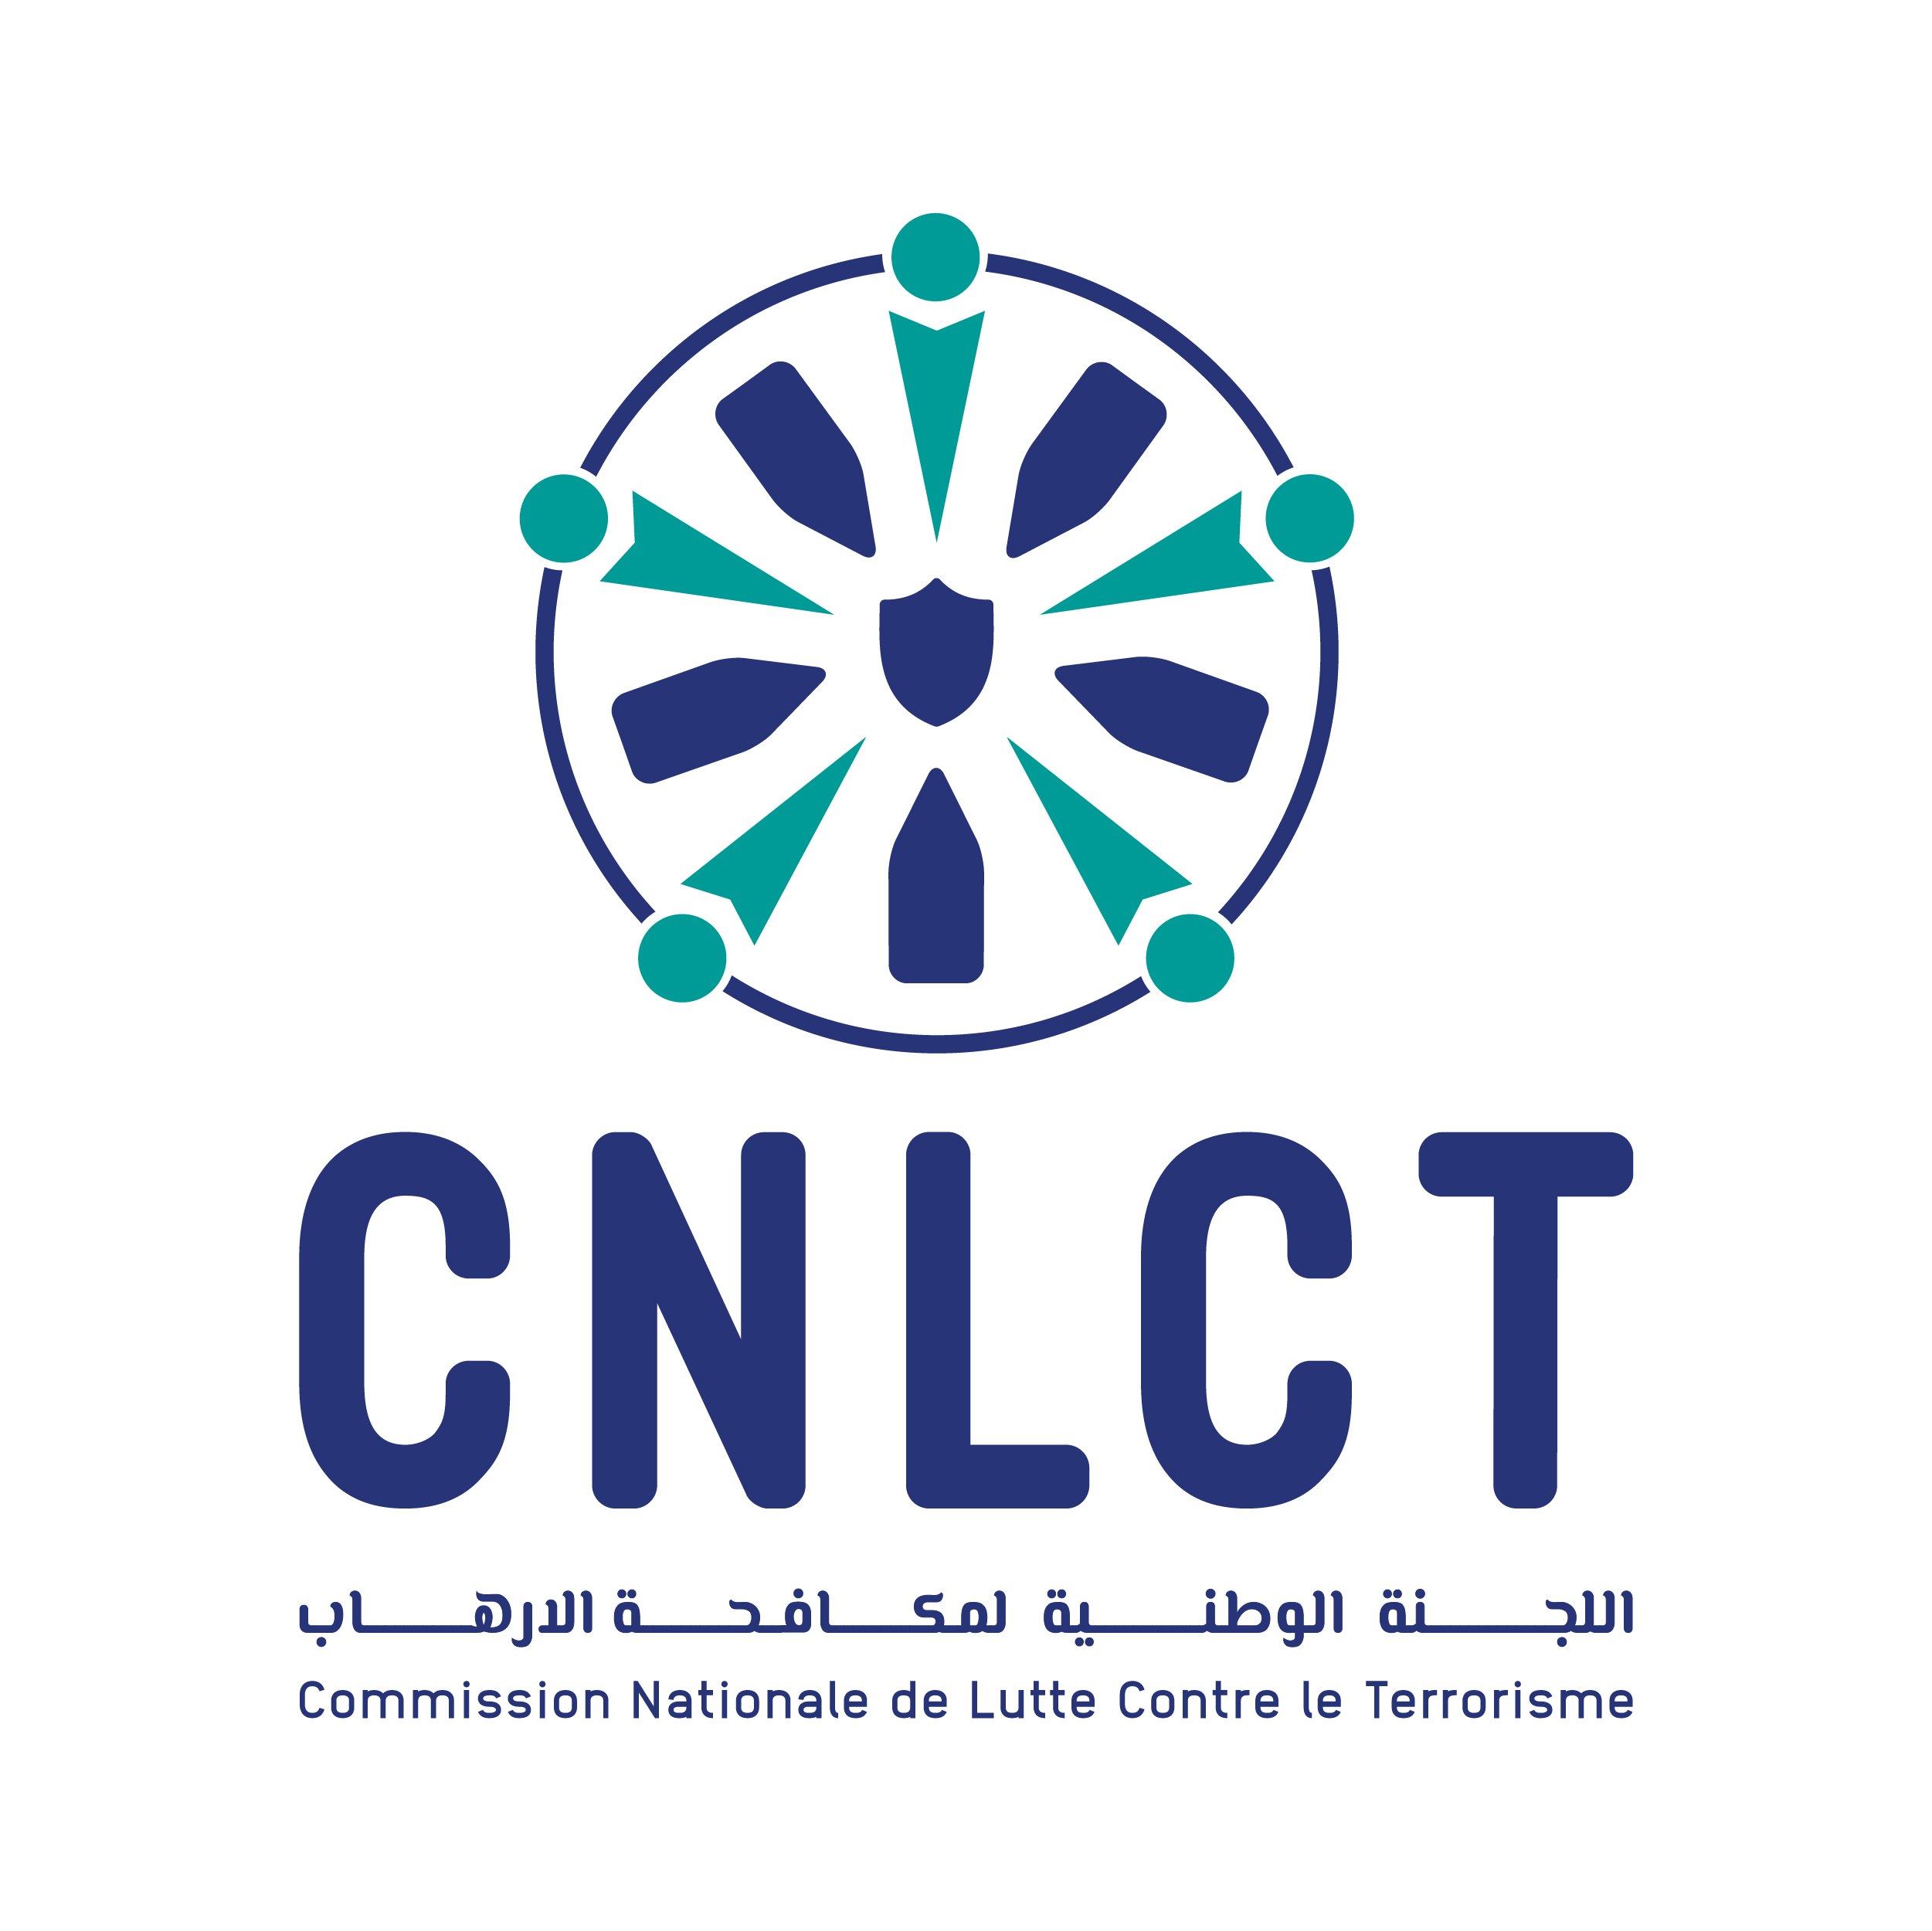 Commission nationale de lutte contre le terrorisme